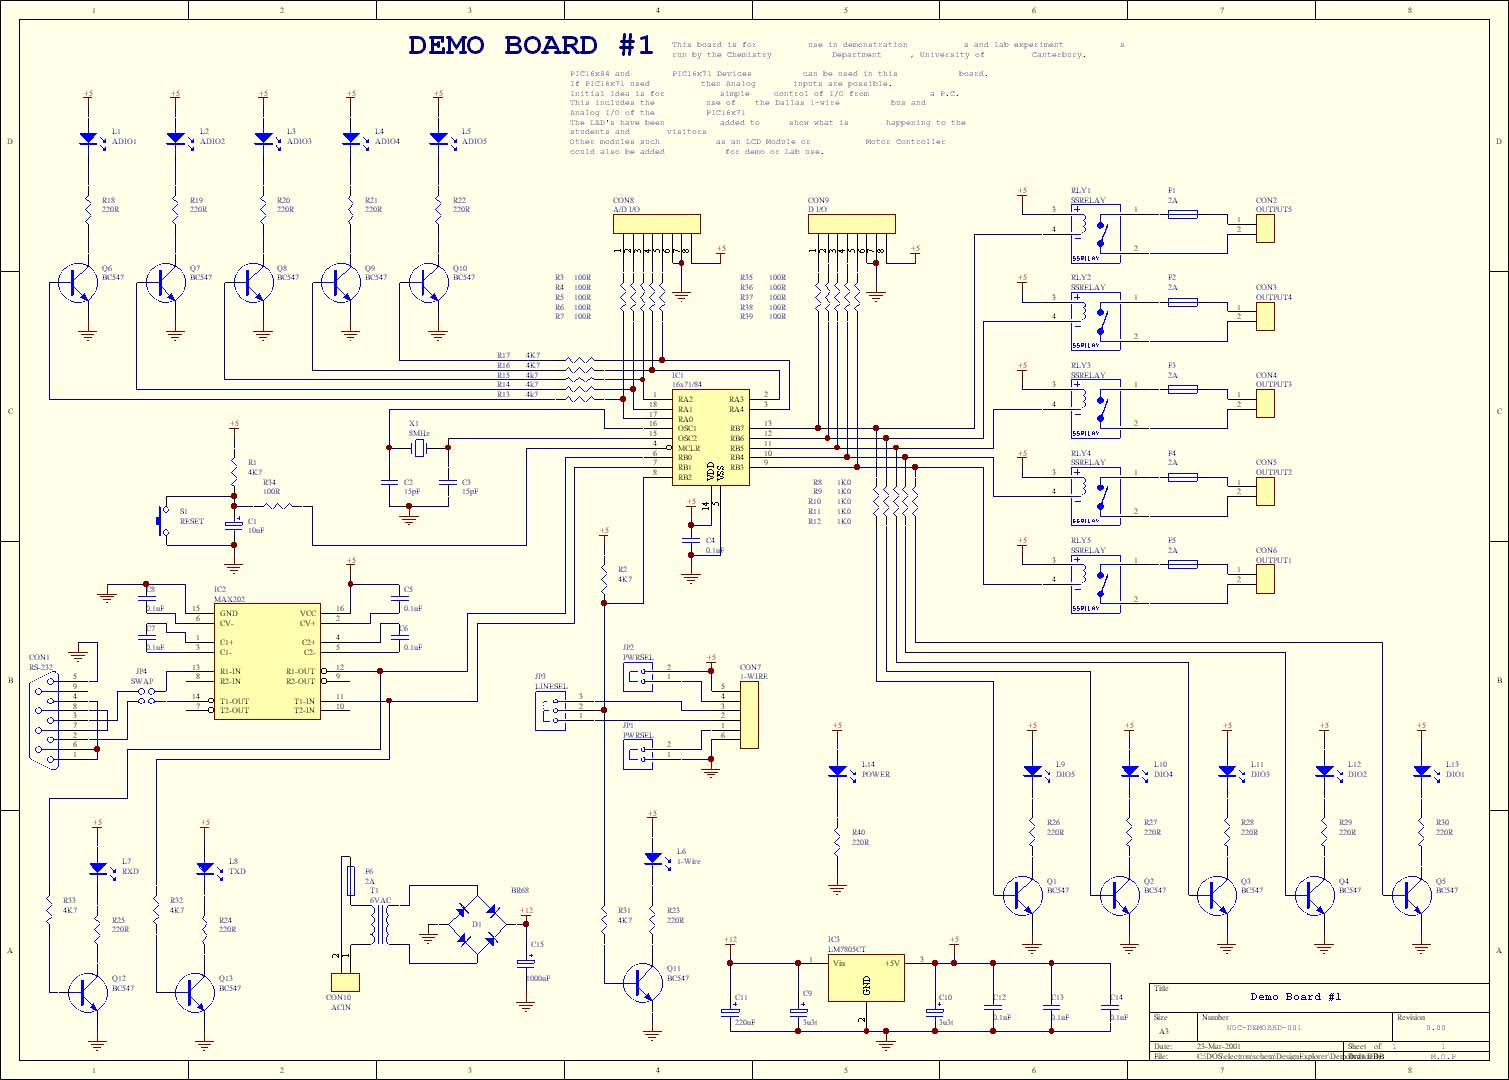 Electronic Circuit Schematics E Meter Diagram Pic Demo Board